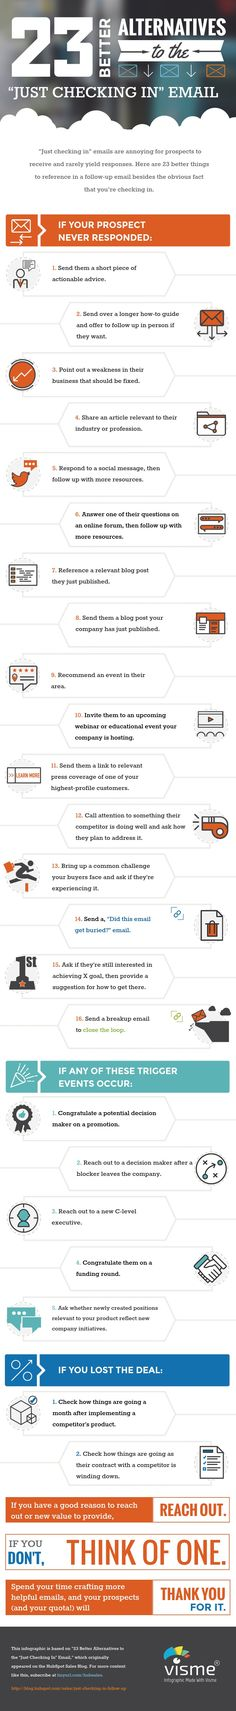 """HubSpot: 23 Better Alternatives to the """"Just Checking In"""" Email [Infographic] via @hubspot"""